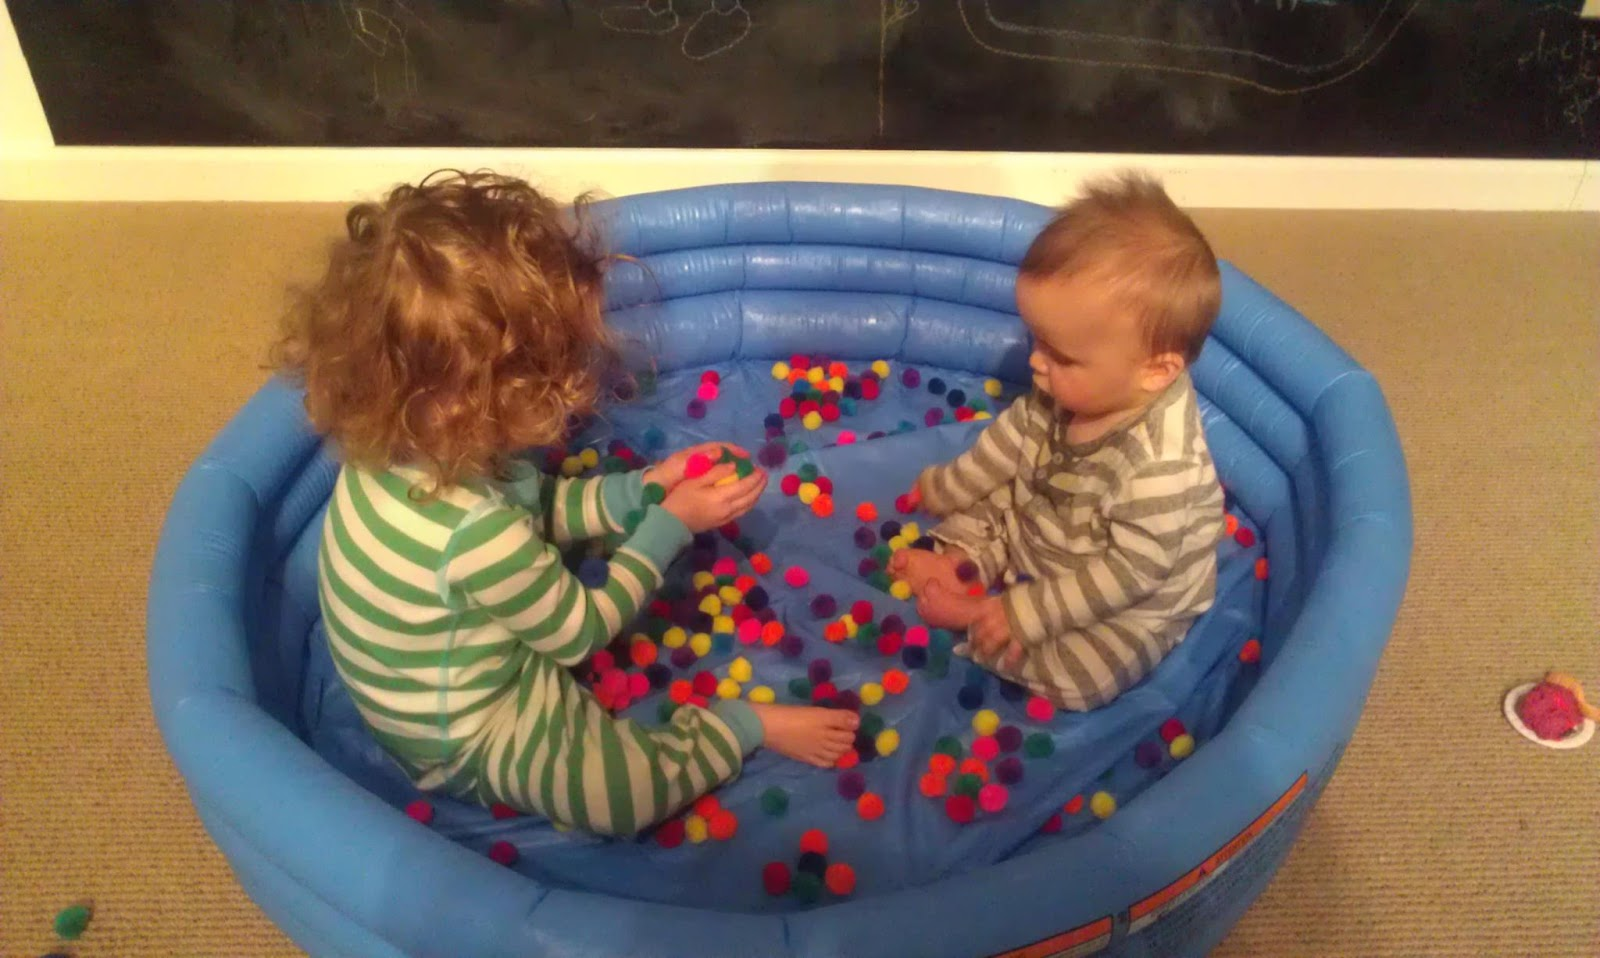 Best Baby Toys For 8 Months Old : First sensory experiences: what age is best?